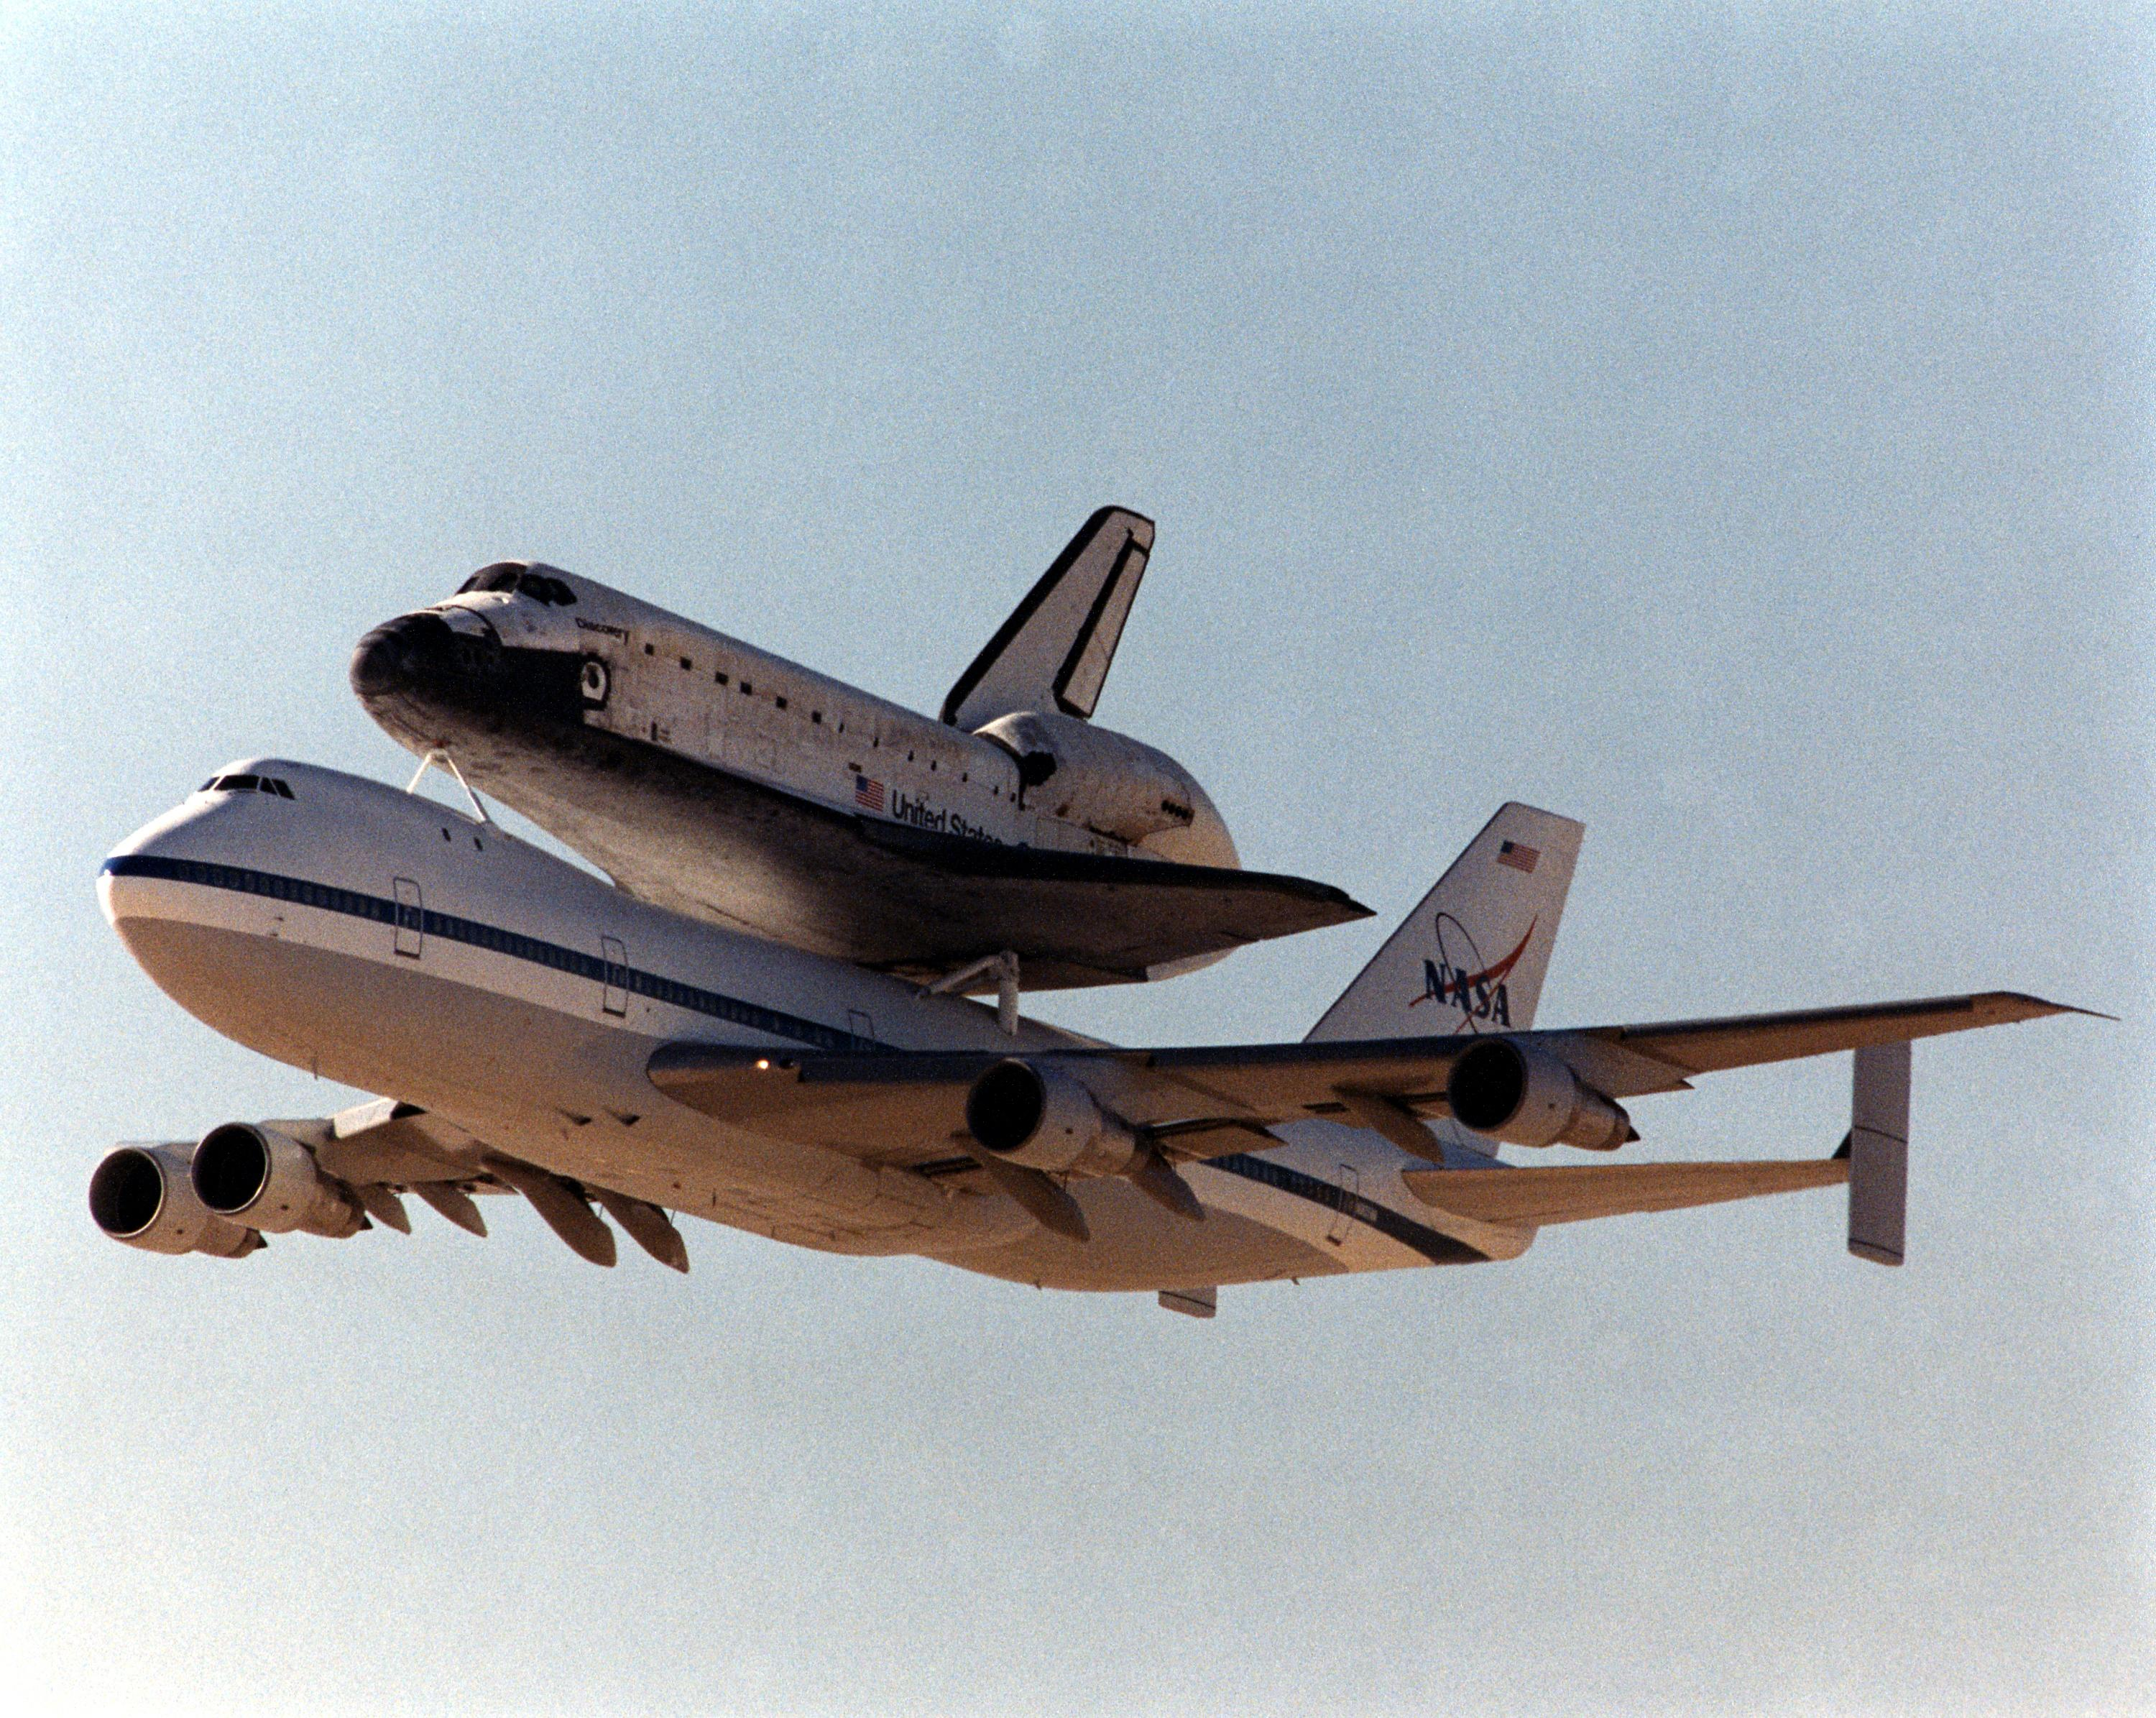 space shuttle landing on aircraft carrier - photo #41